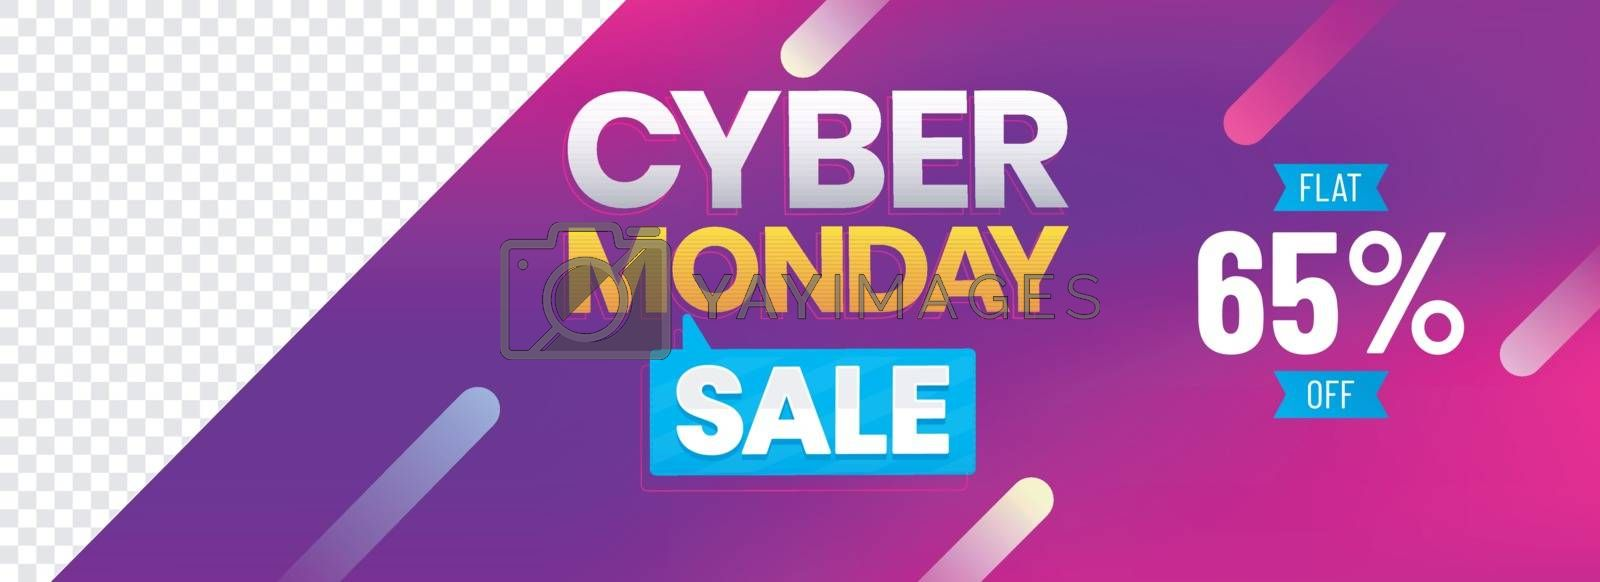 Cyber Monday Sale header or banner design with 65% discount offer on shiny purple background with space for your product image.